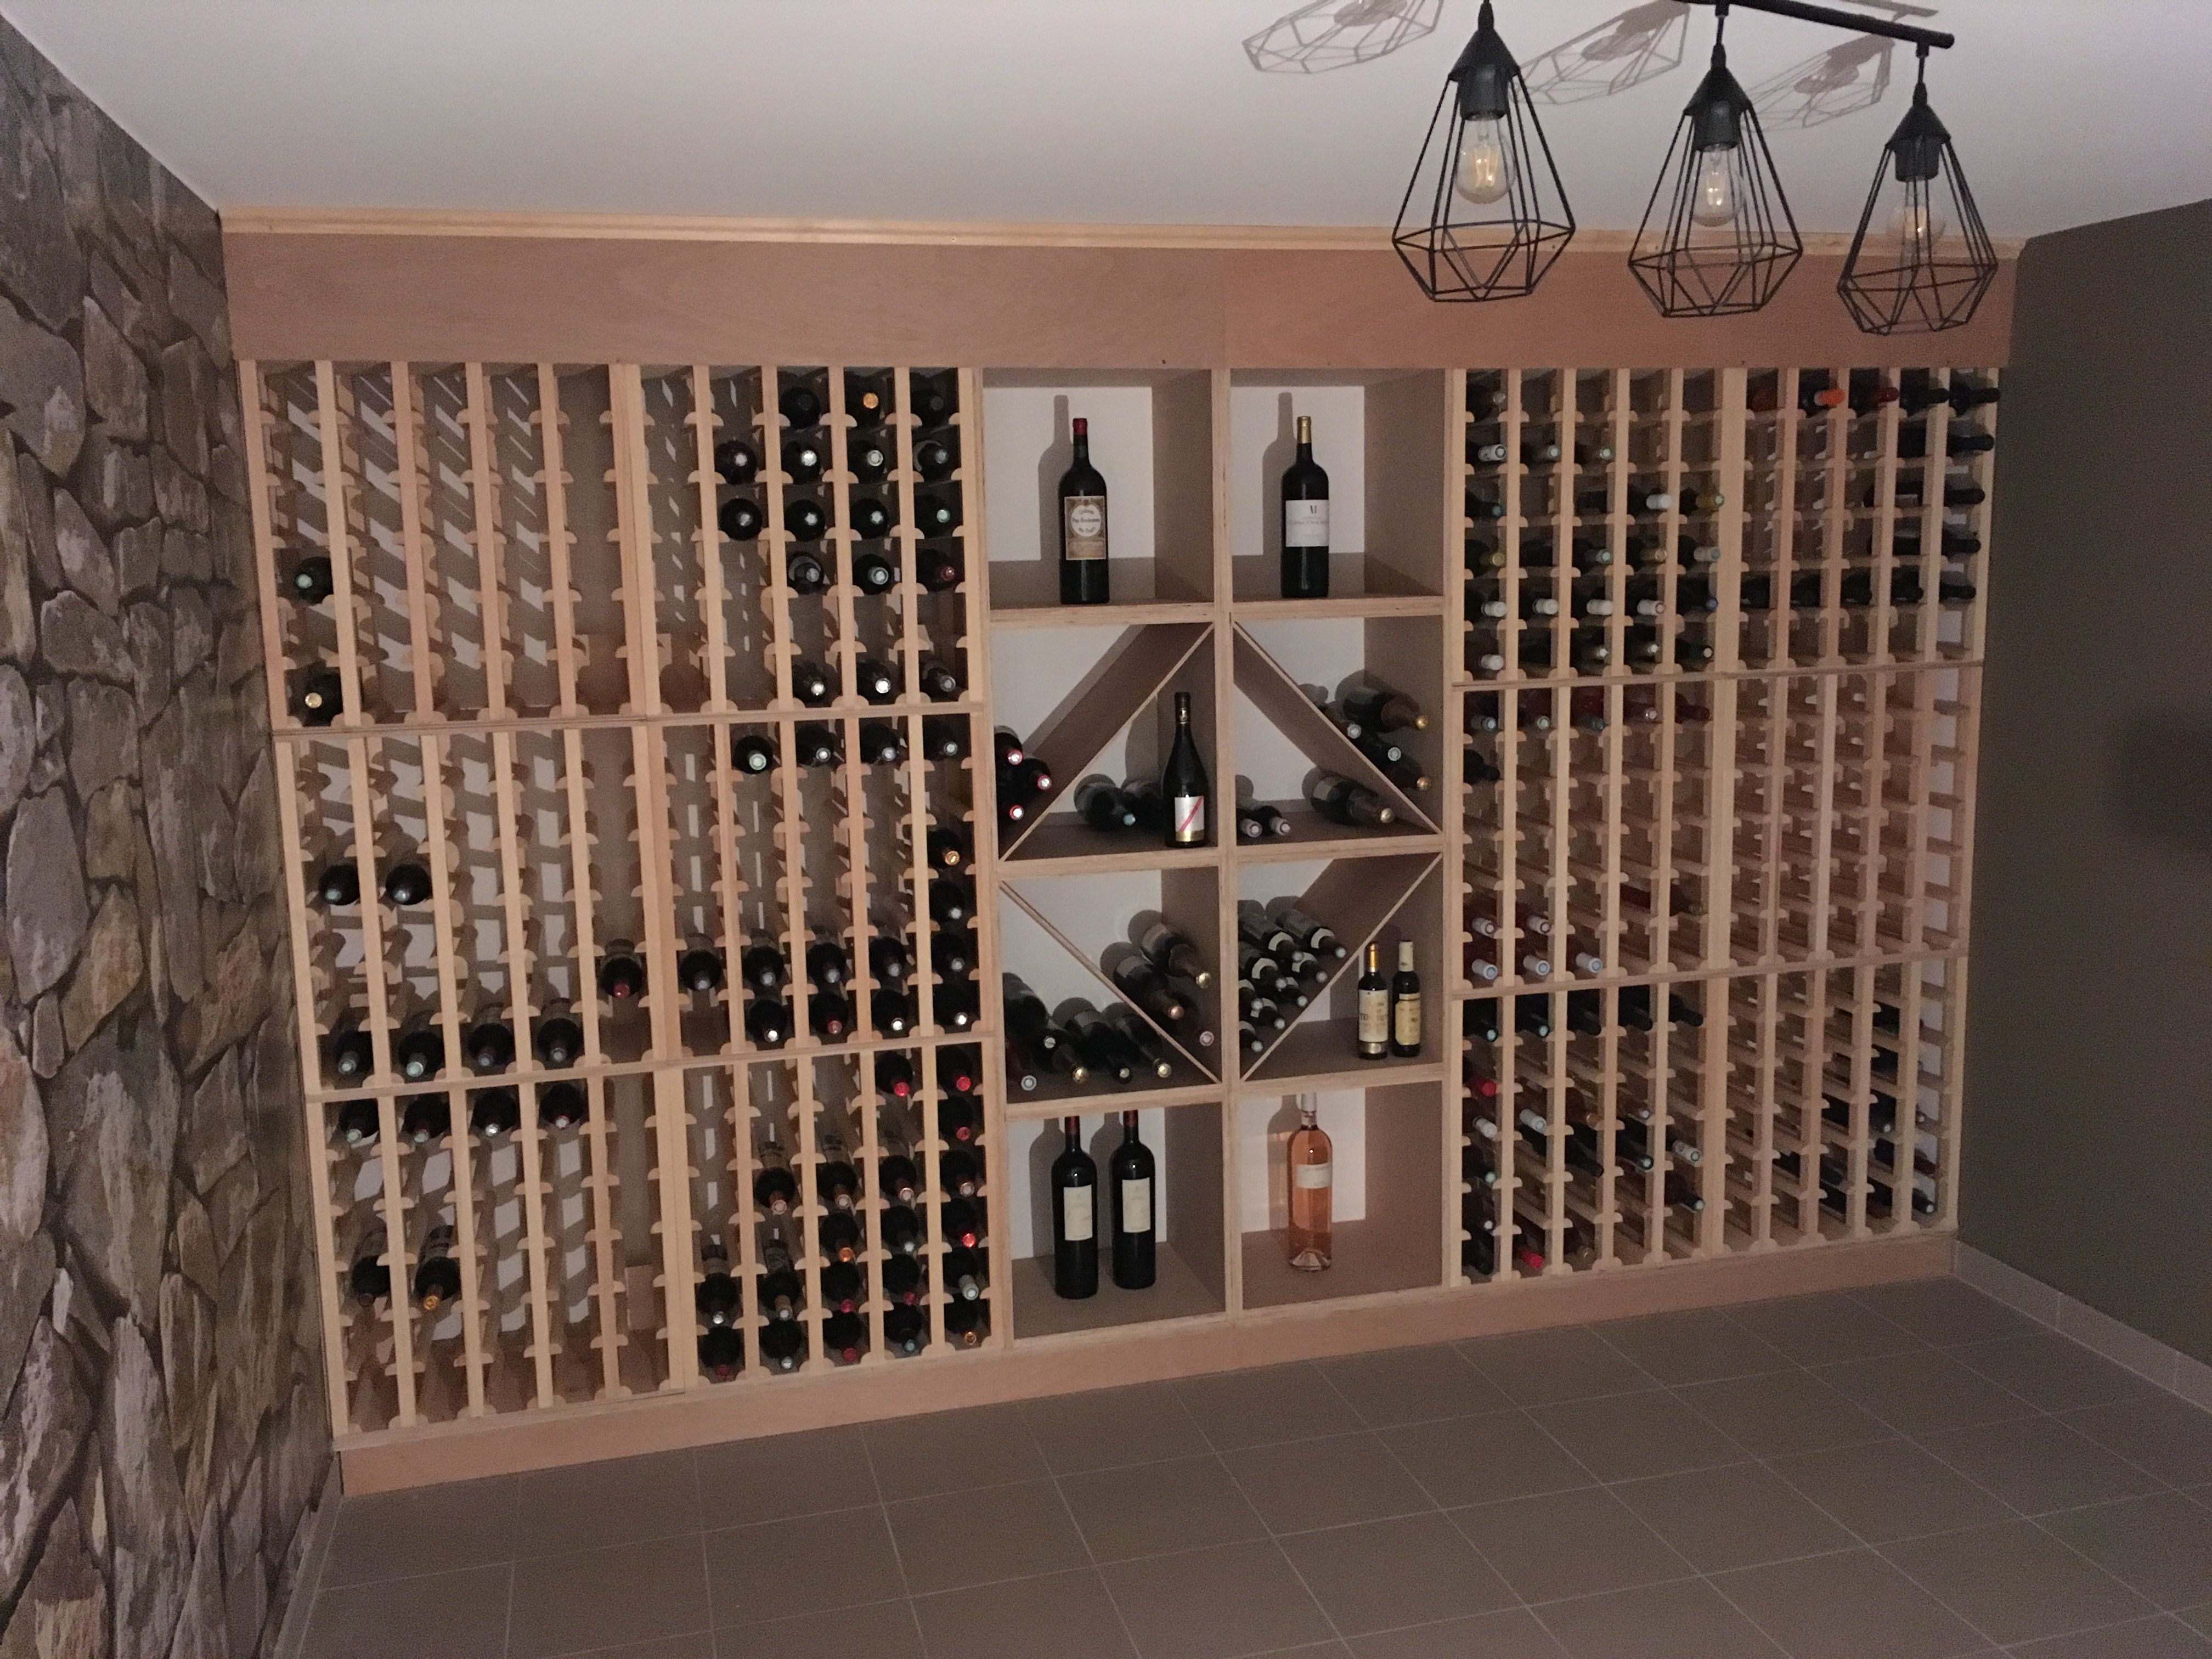 casiers pour bouteilles casier vin cave vin rangement. Black Bedroom Furniture Sets. Home Design Ideas